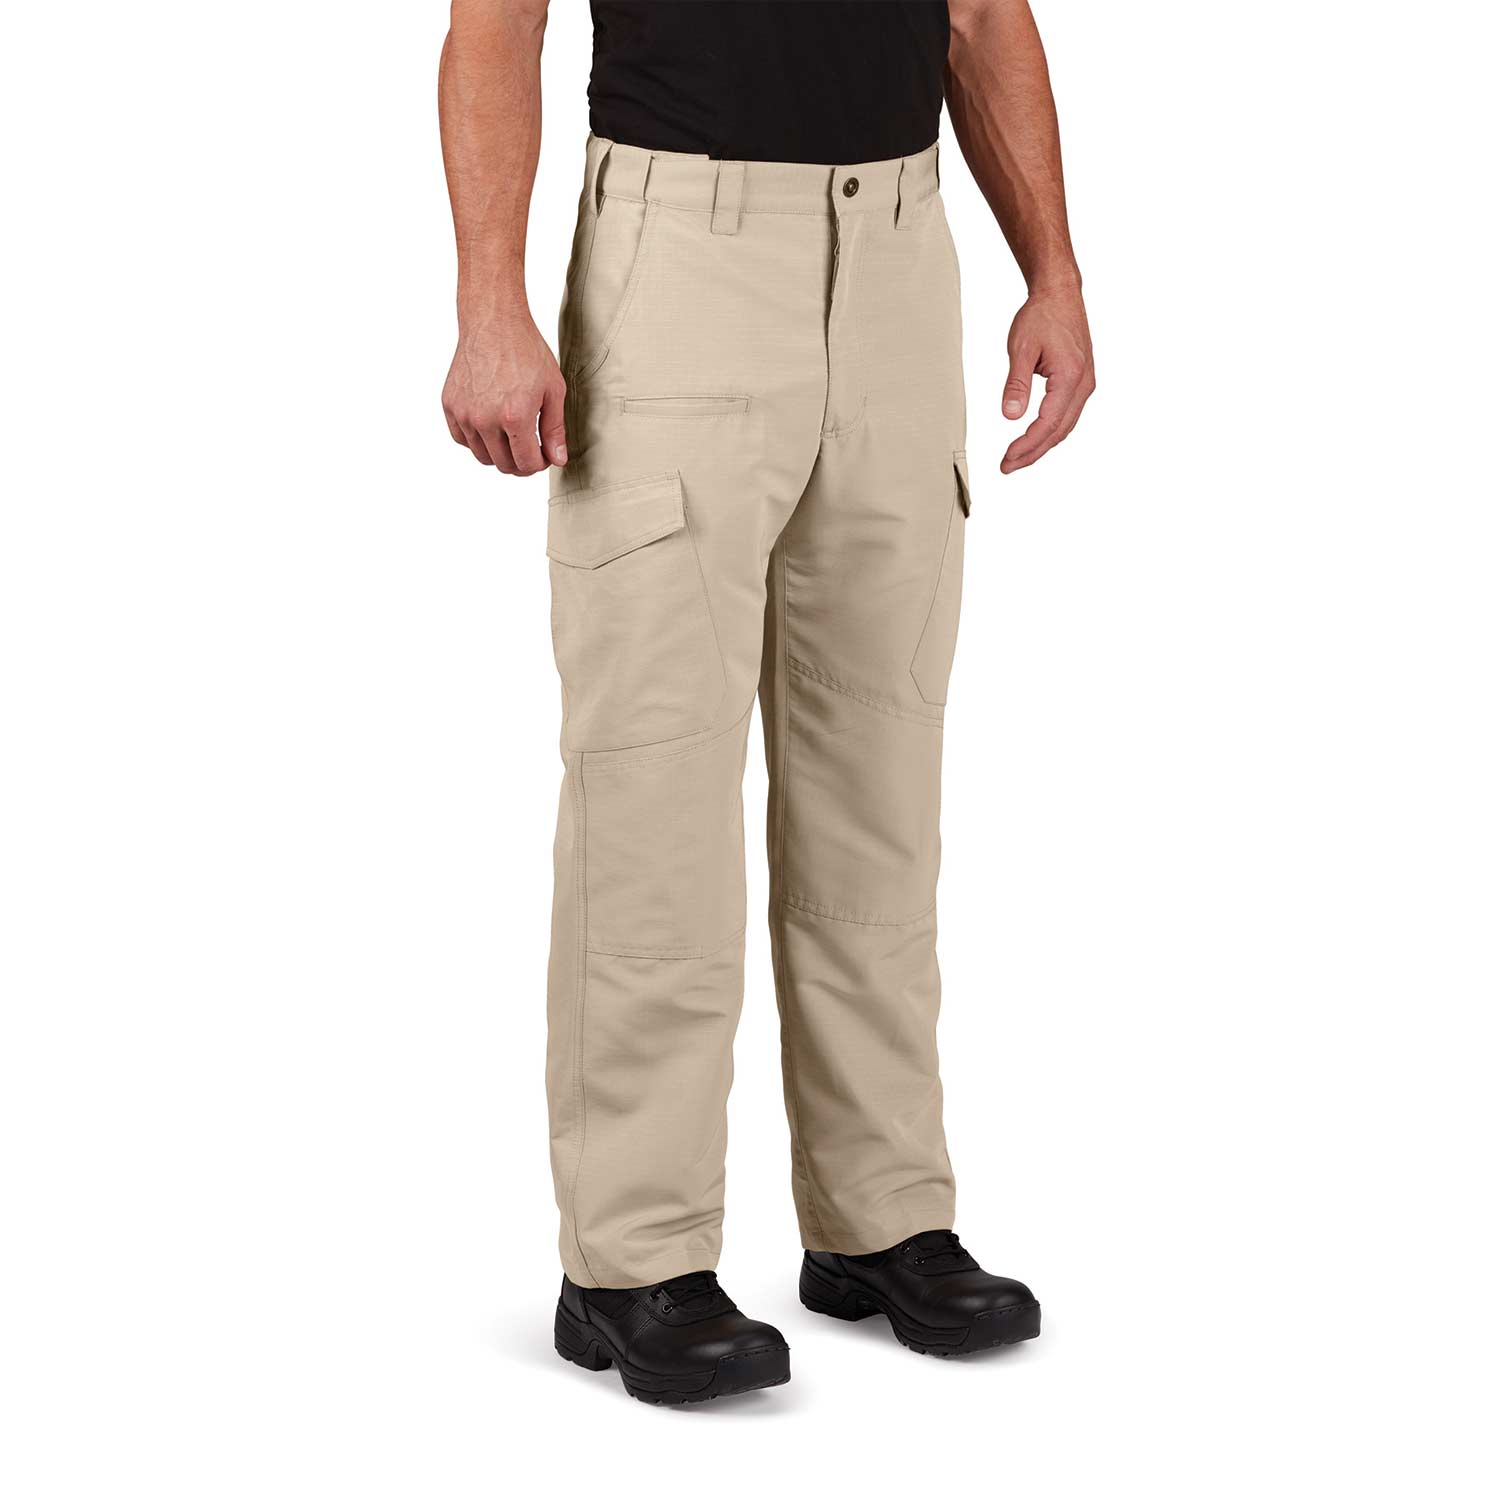 PROPPER EdgeTec Tactical Pant